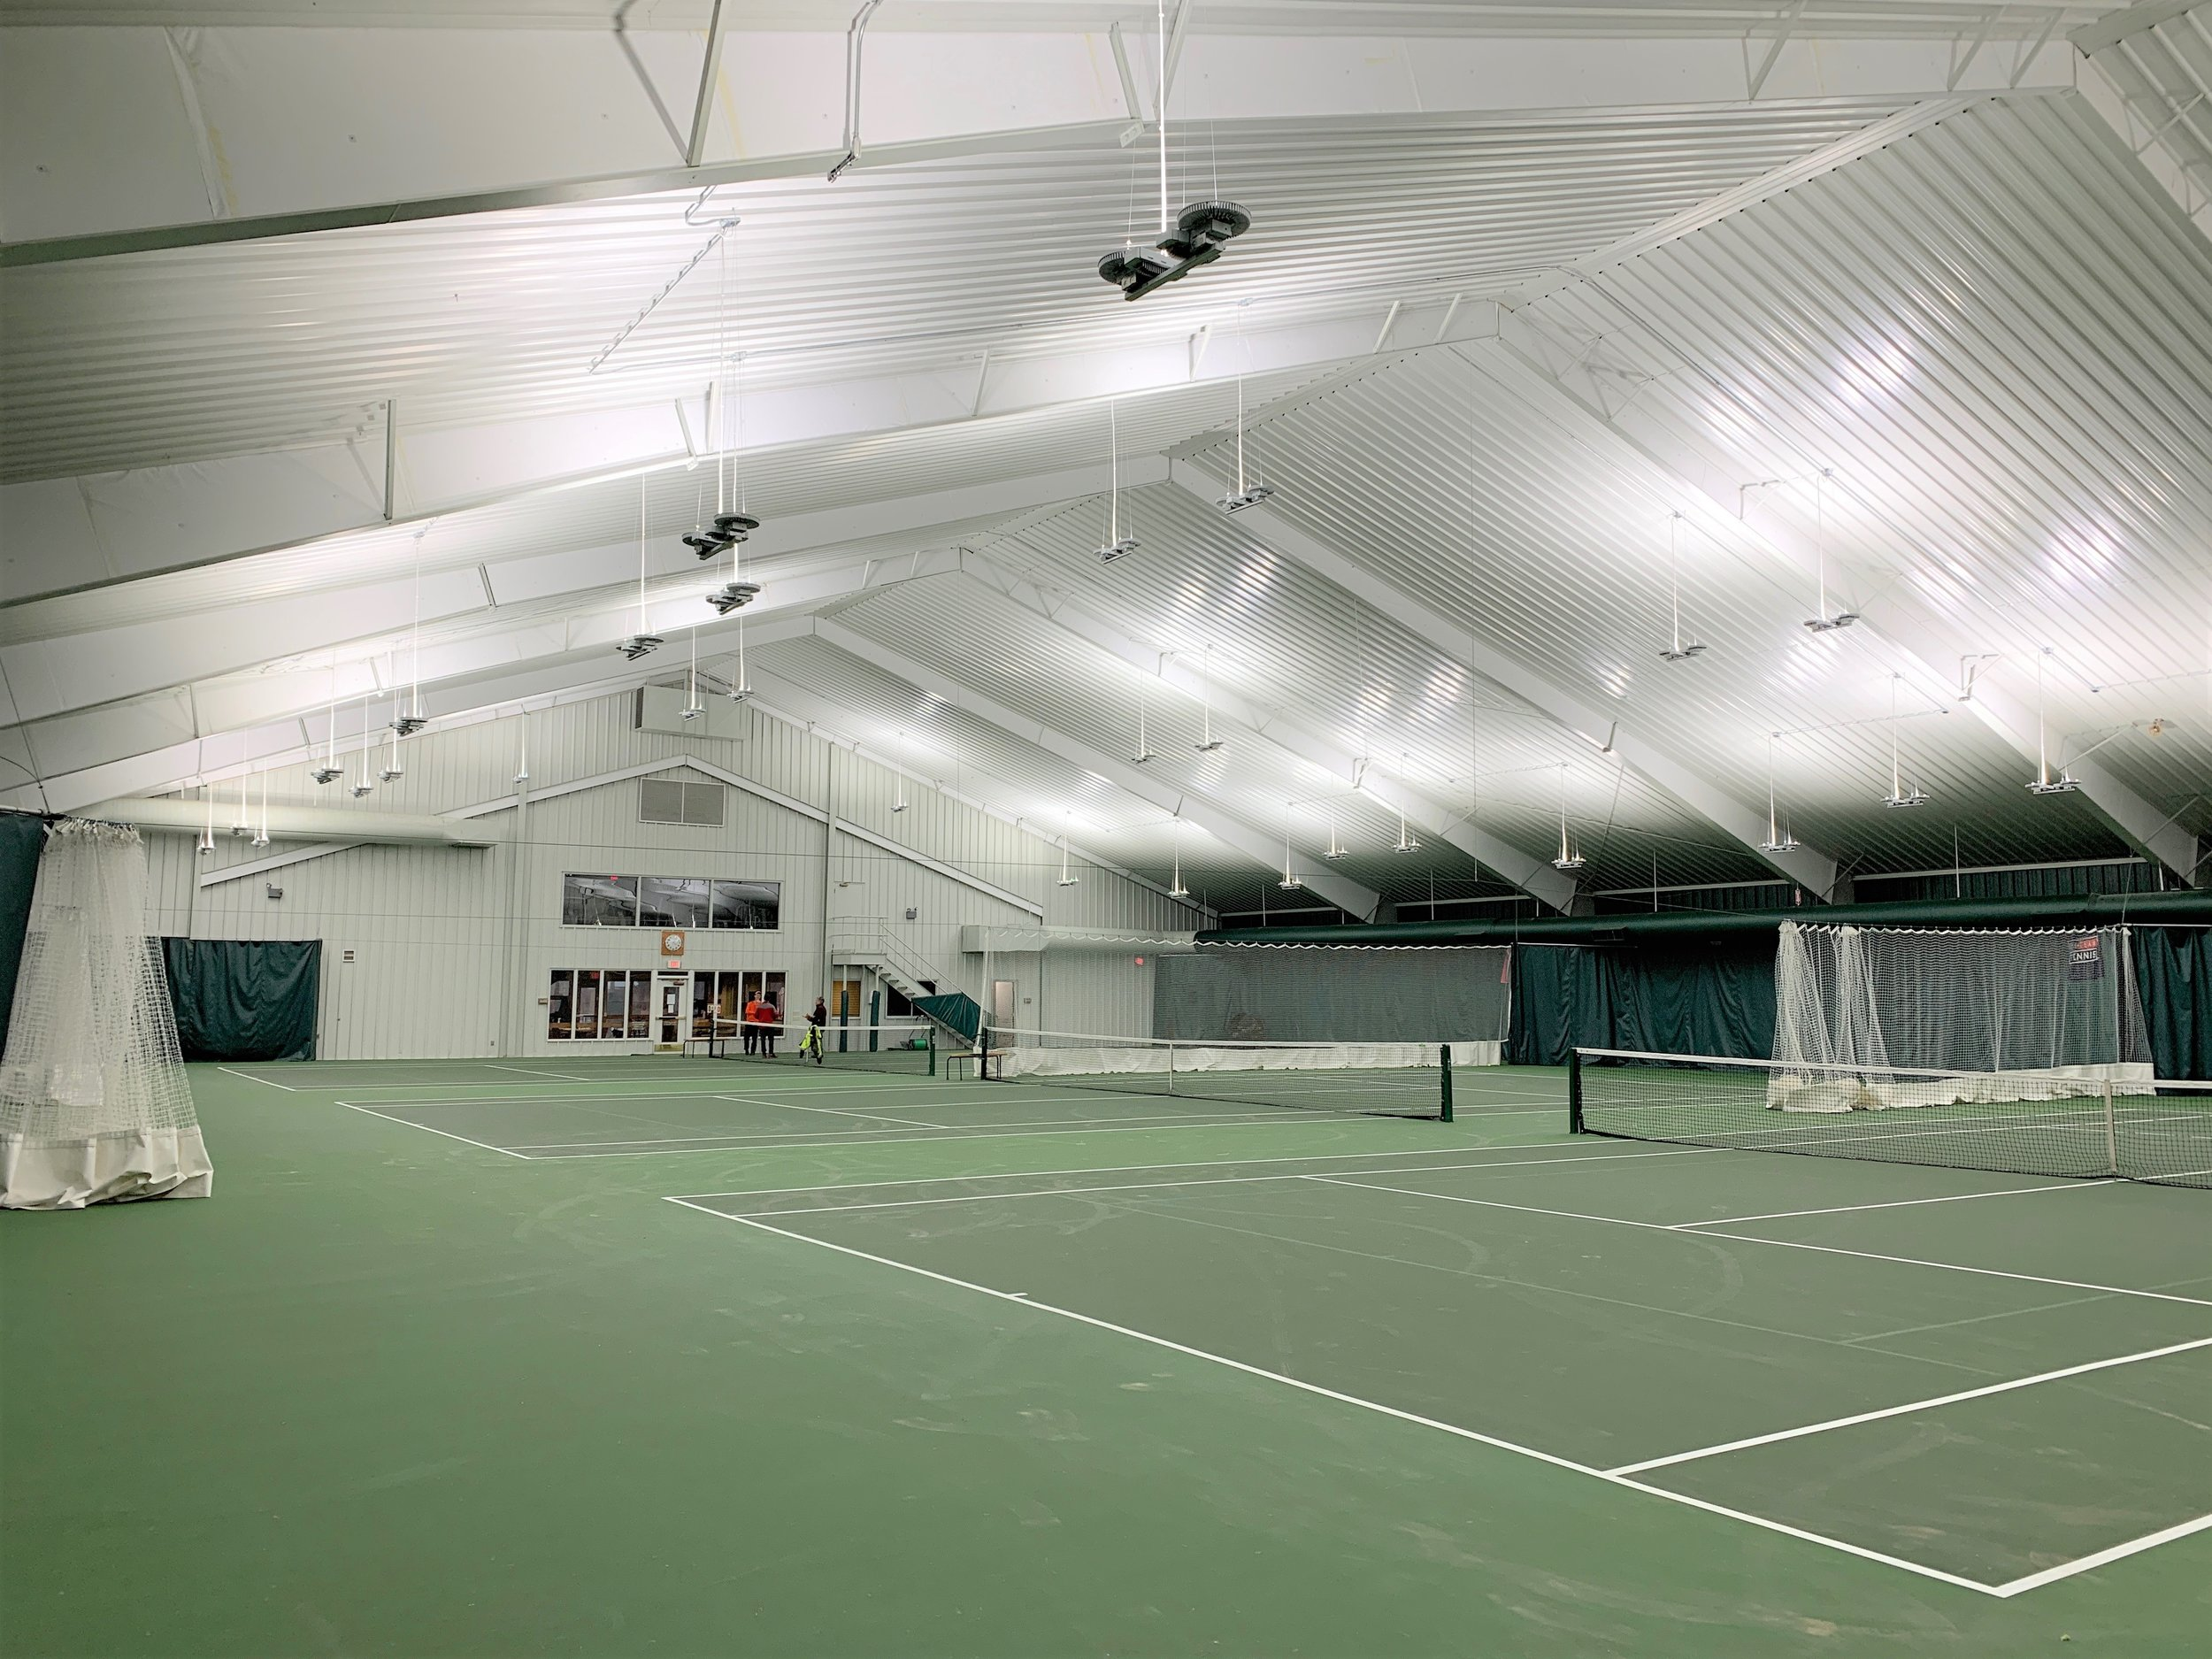 Last week, we finished installation of our indirect LED lighting over the 3 indoor tennis courts at the Arrowhead Country Club, Rapid City, SD. It was a pleasure to work with the staff at Arrowhead and we were able to complete the project within the planned time period and turn the courts back over to the members before the end of the week. We are proud to have partnered with this fantastic club to dramatically increase their light levels. This is the first project we have done in South Dakota and we hope there will be many more in this great state. We would love to help you with your facility needs. To speak with one of our experts and learn about our systems, call us at 847-892-6956 or visit our web page by clicking  here . To see the financial benefits, visit our case studies page  here .